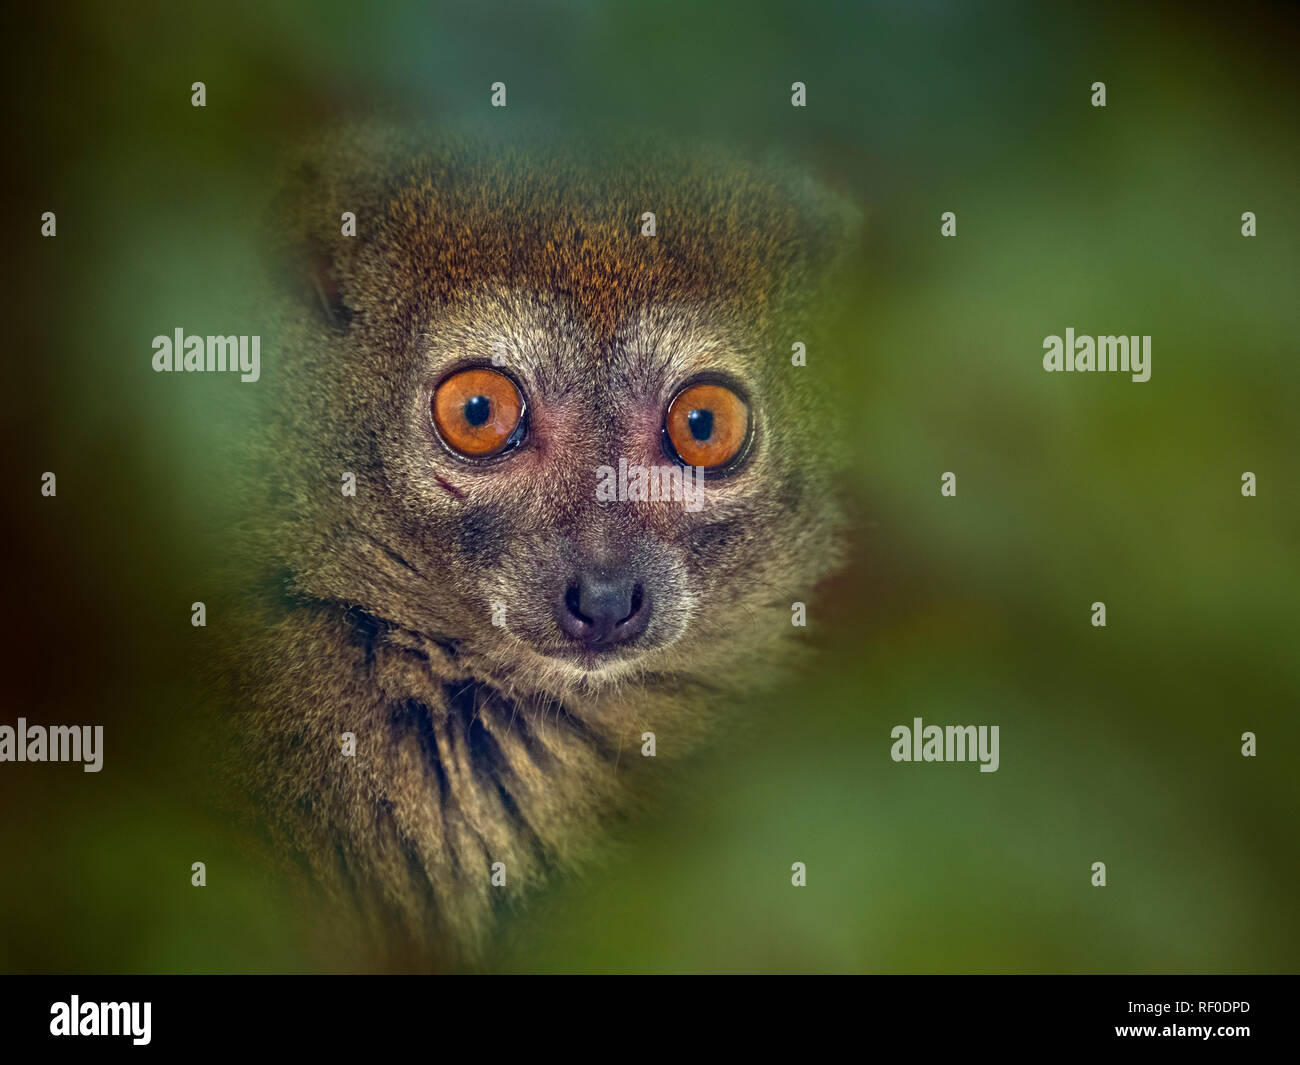 Western lesser bamboo lemur Hapalemur occidentalis also known as the northern bamboo lemur or western gentle lemur - Stock Image